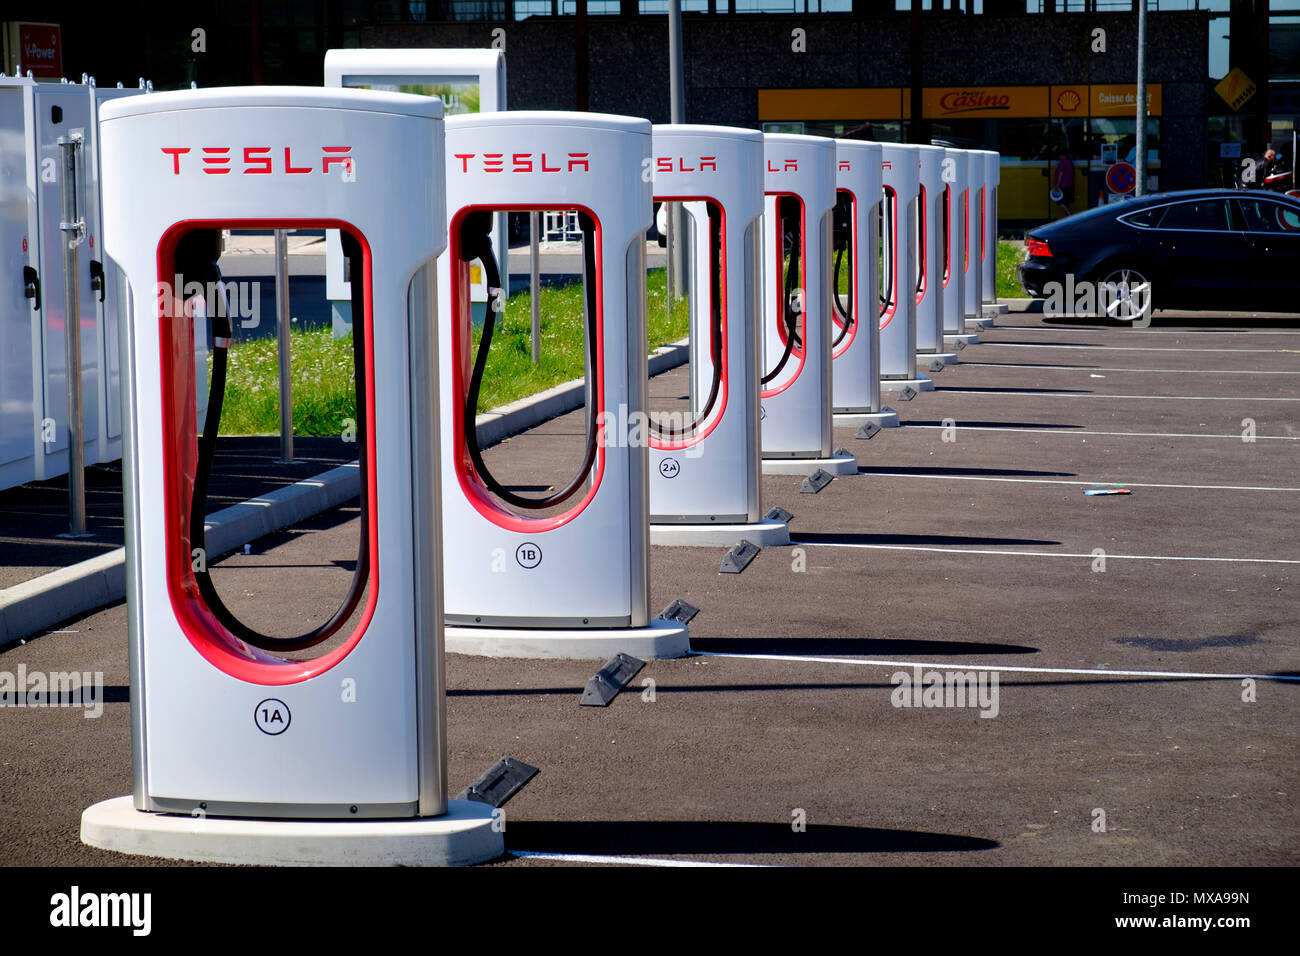 Tesla multi electric car charging points at French service station - Stock Image